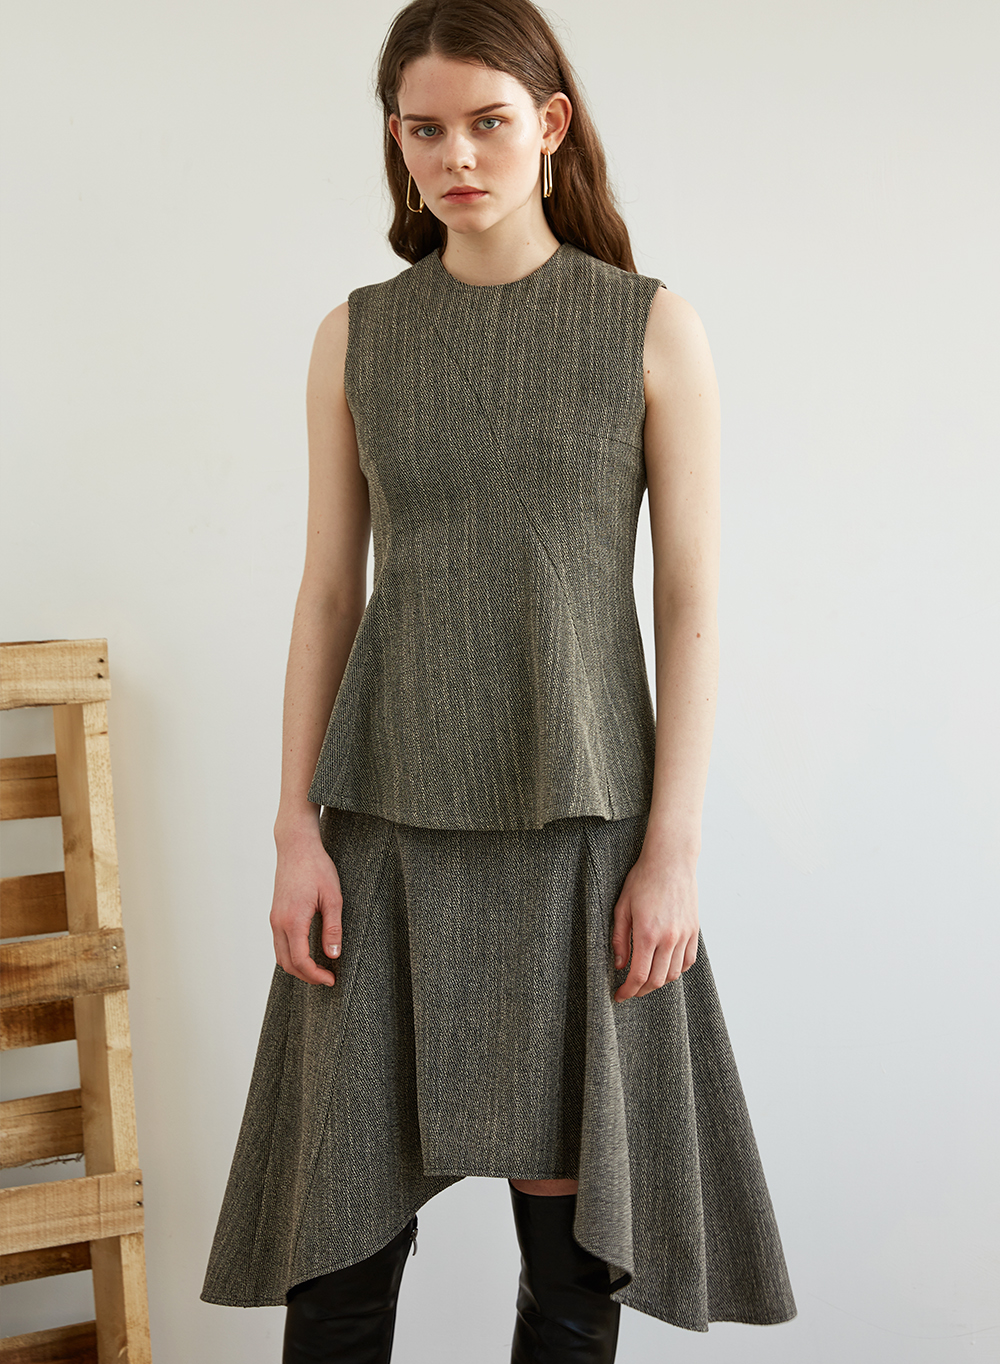 FW18 FLARE SLEEVELESS TOP GRAY